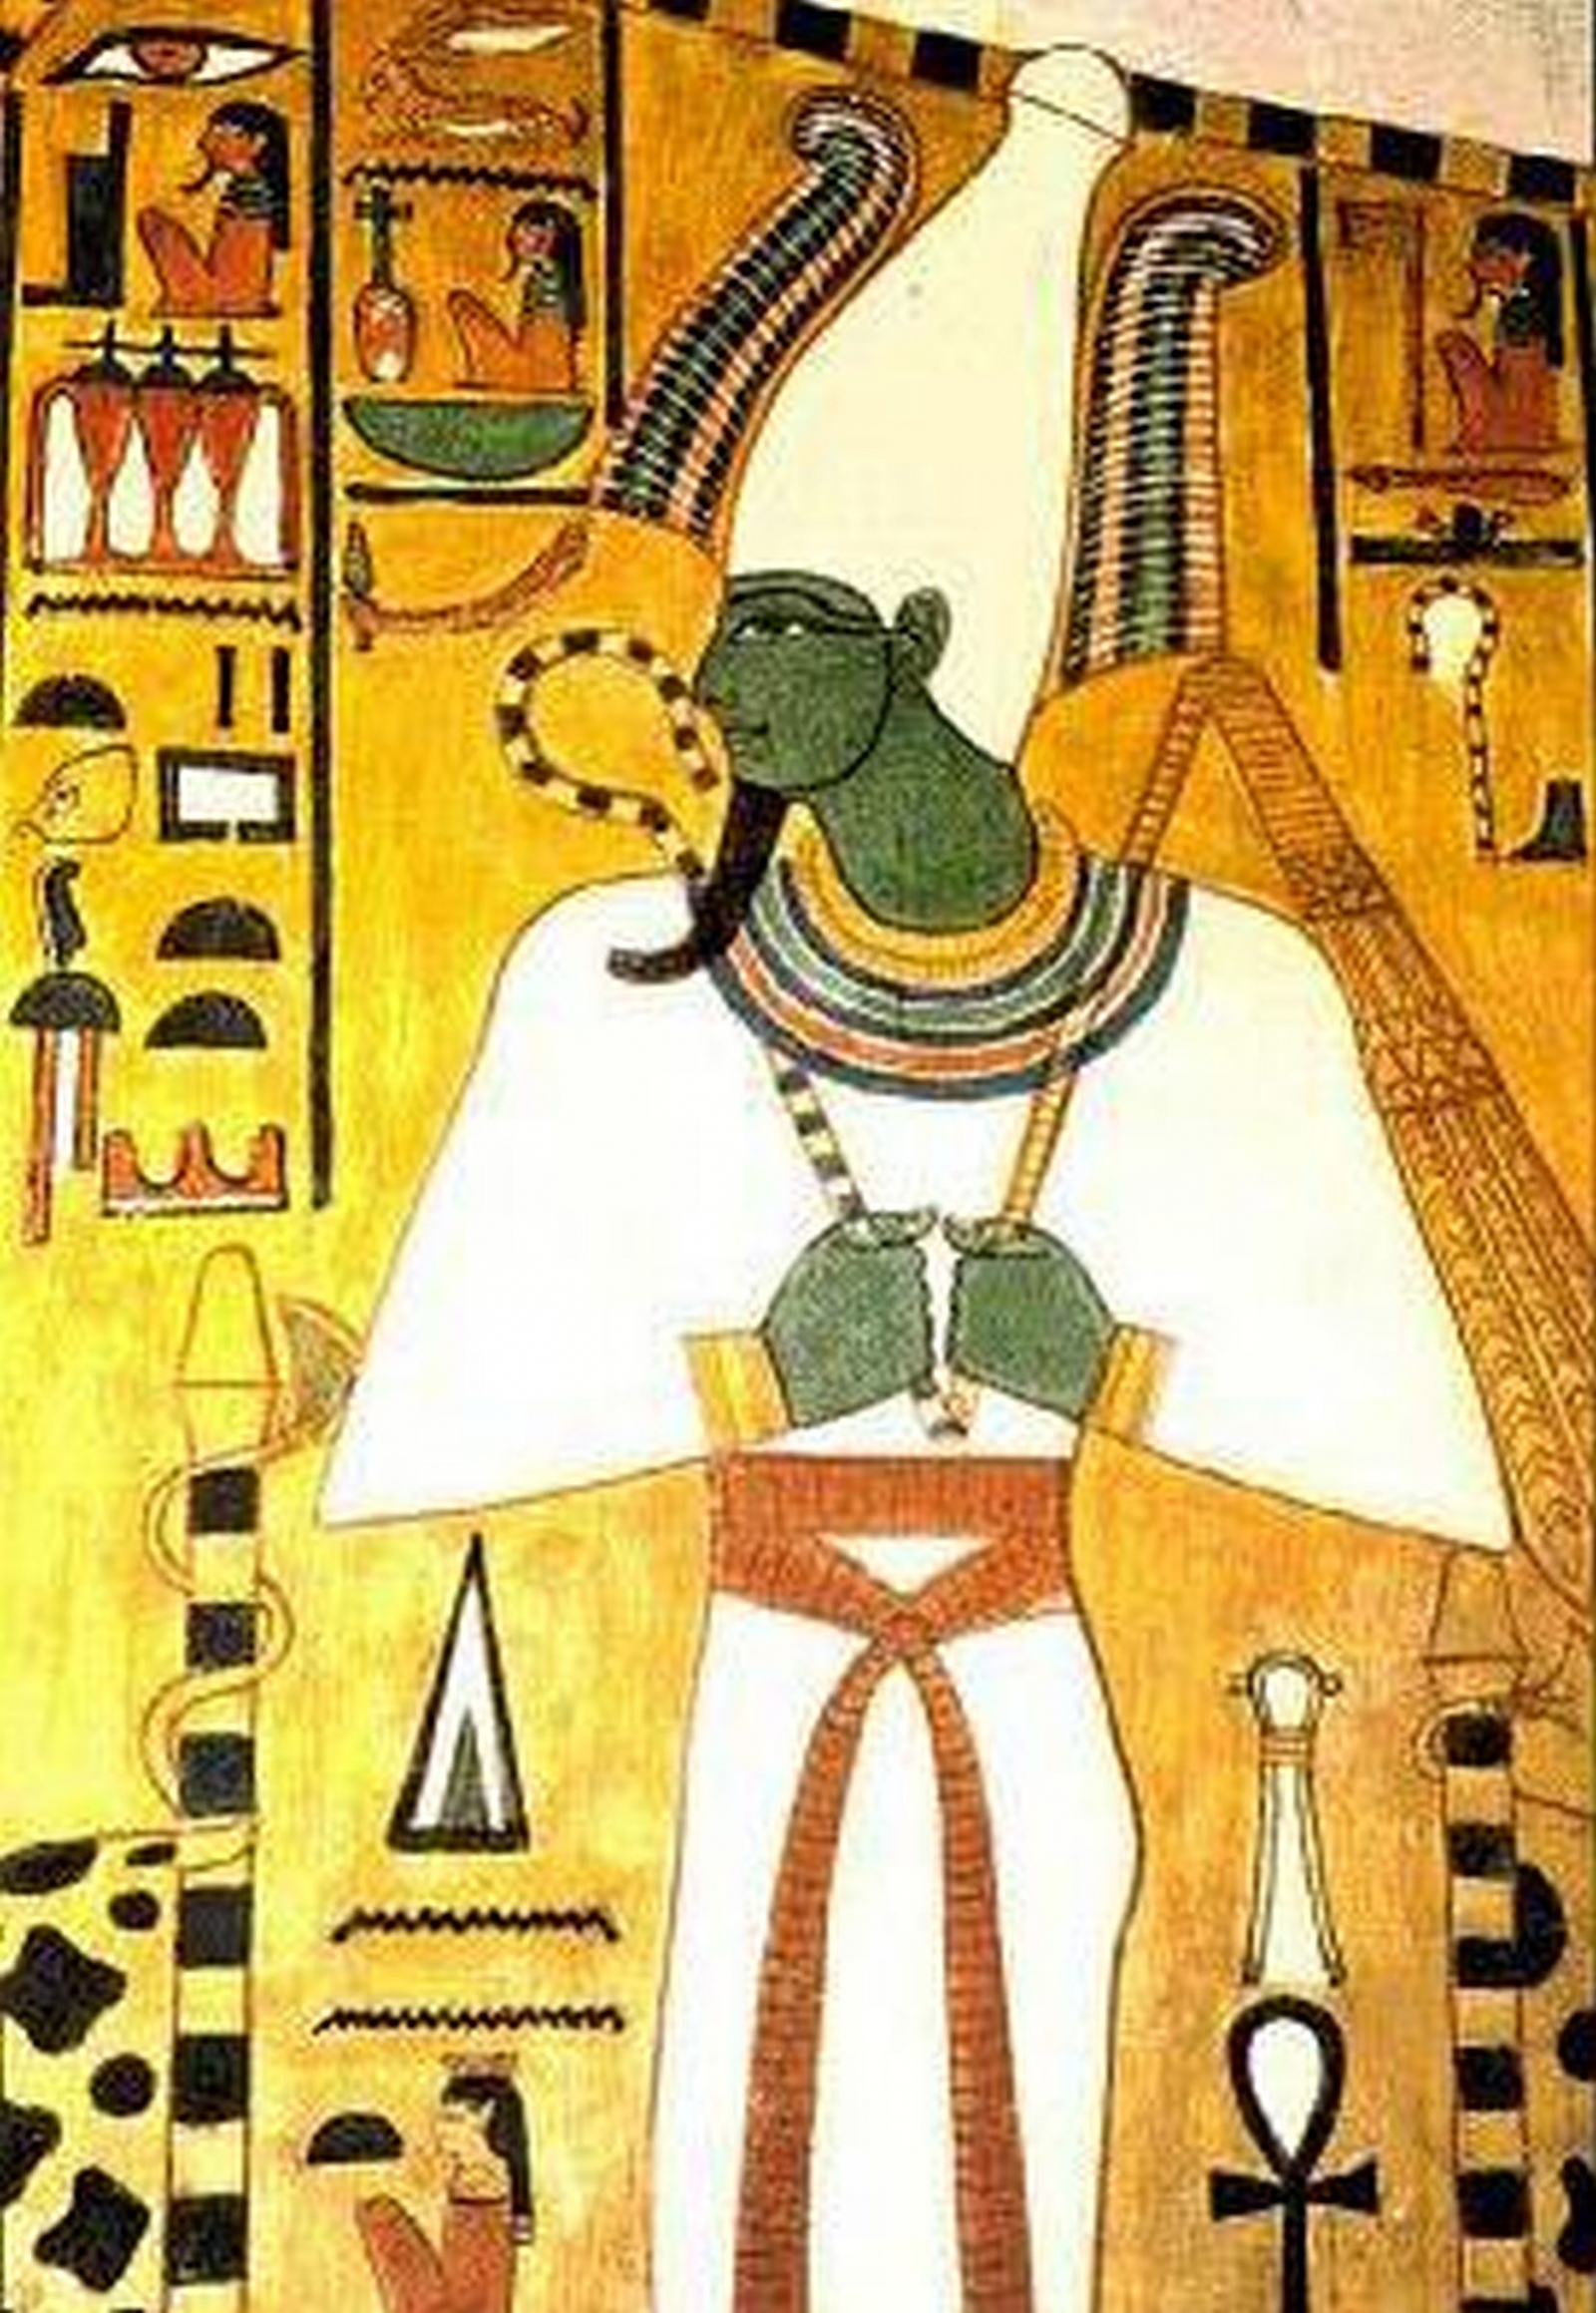 Osiris, god of the dead